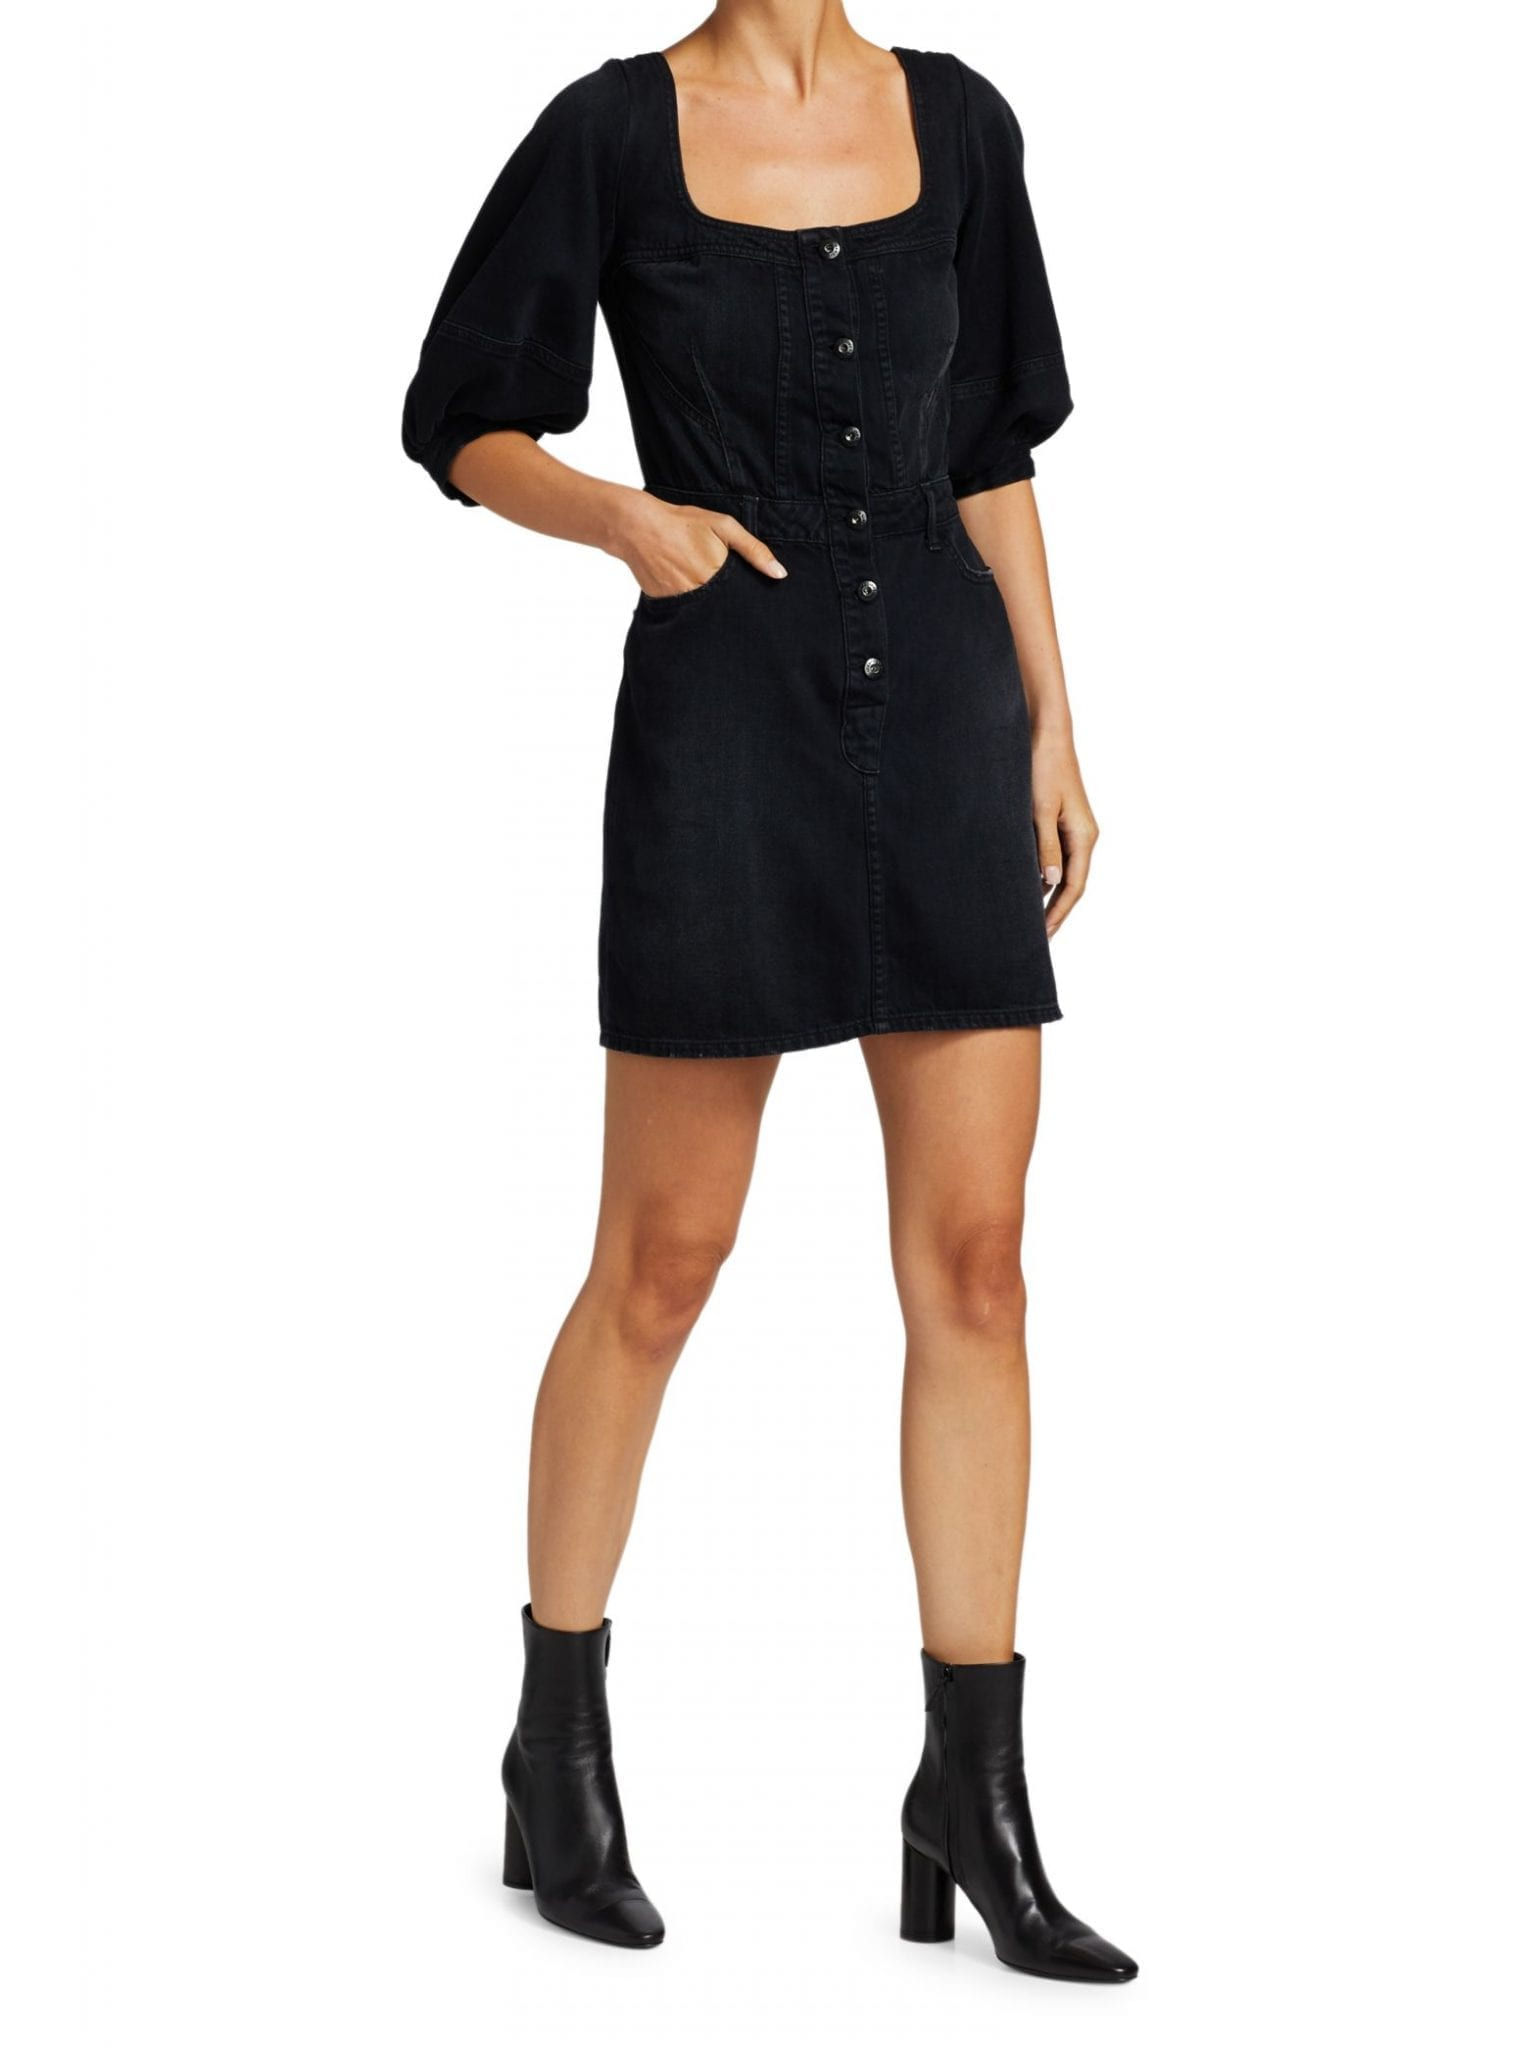 JONATHAN SIMKHAI JONATHAN SIMKHAI STANDARD Poppy Puff-Sleeve Mini Dress